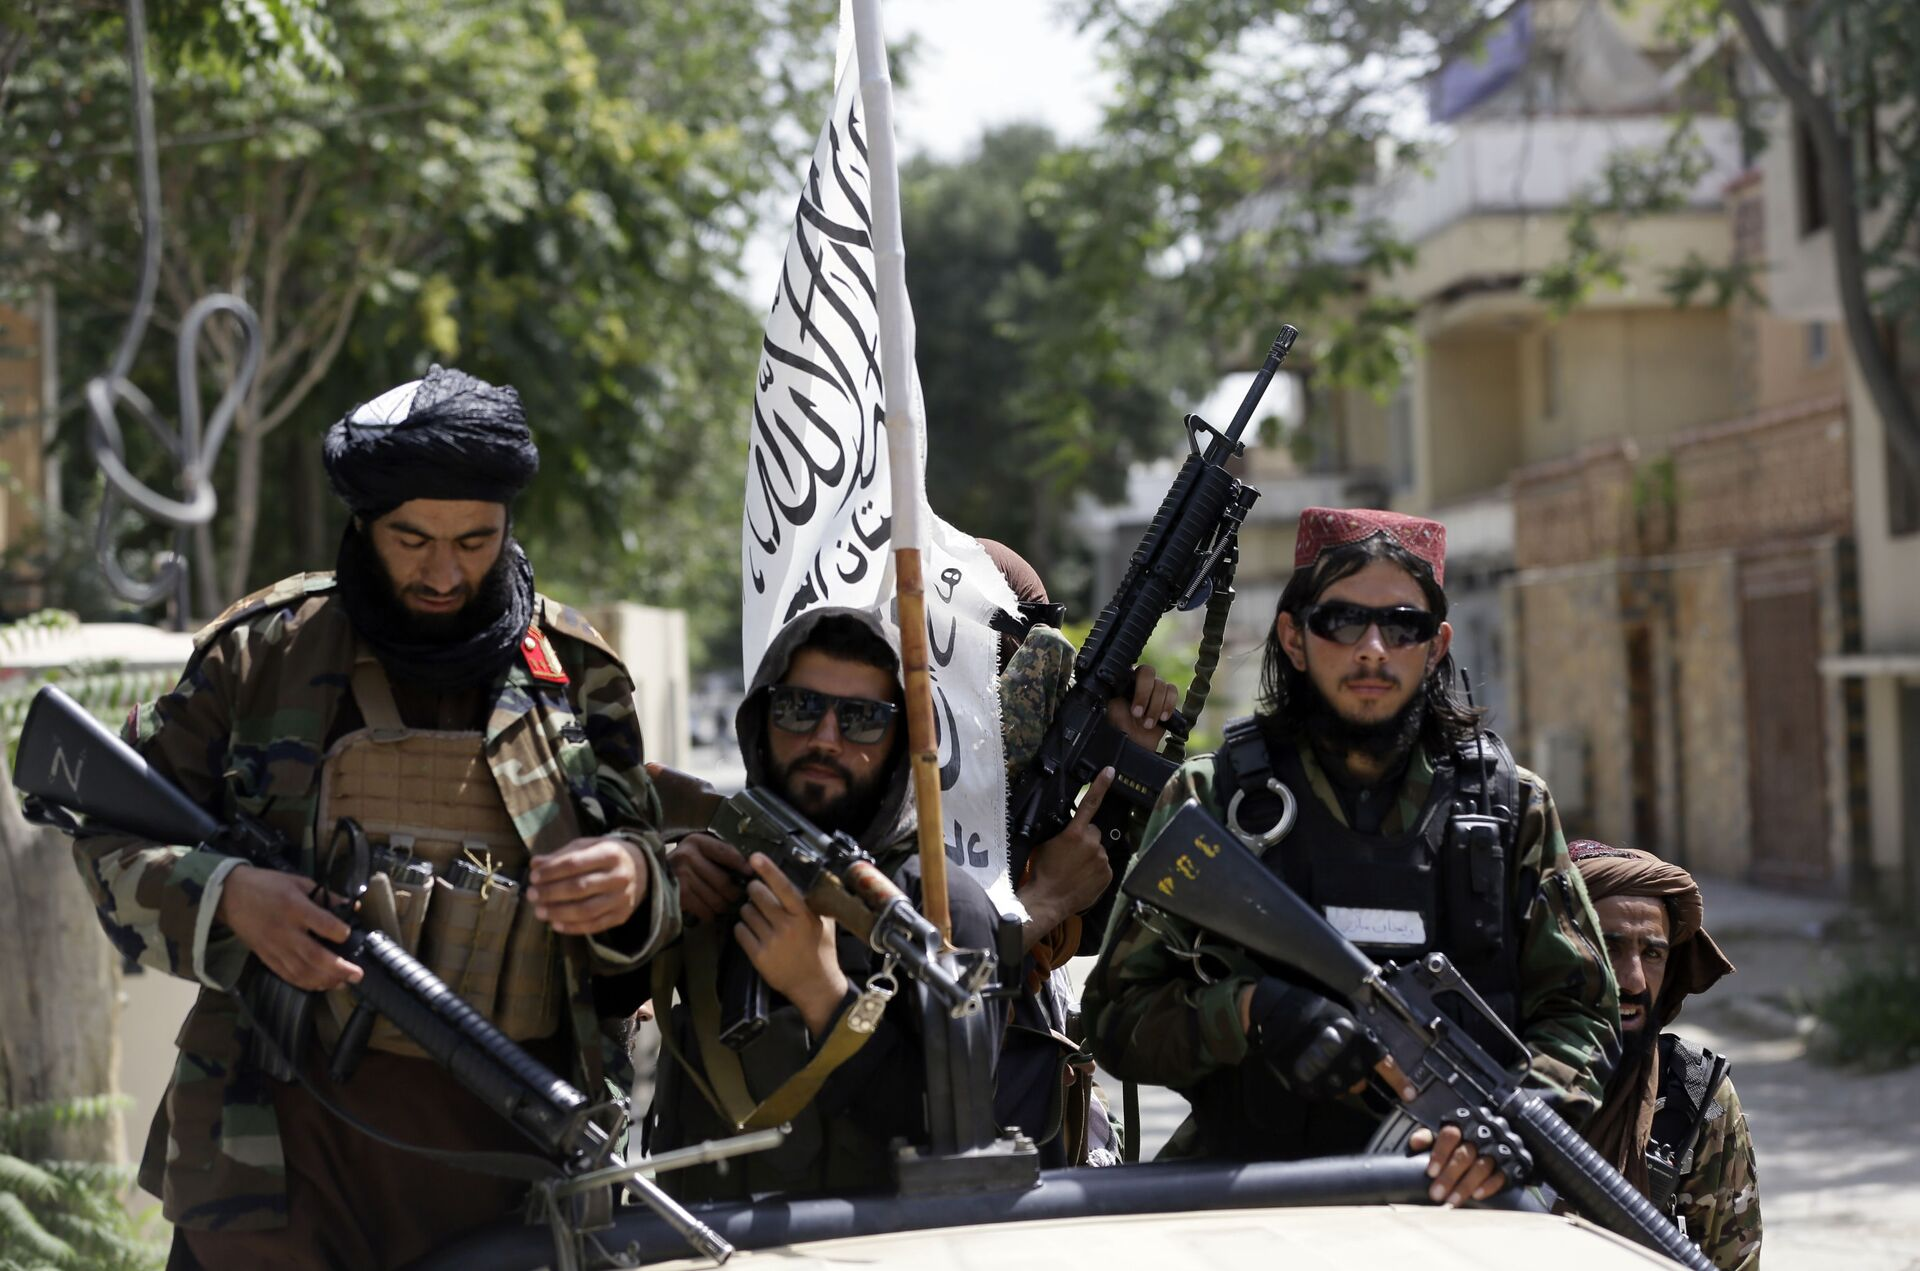 In this Aug. 19, 2021 file photo, Taliban fighters display their flag on patrol in Kabul, Afghanistan. When U.S. President Joe Biden took office early this year, Western allies were falling over themselves to welcome and praise him and hail a new era in trans-Atlantic cooperation. - Sputnik International, 1920, 07.09.2021